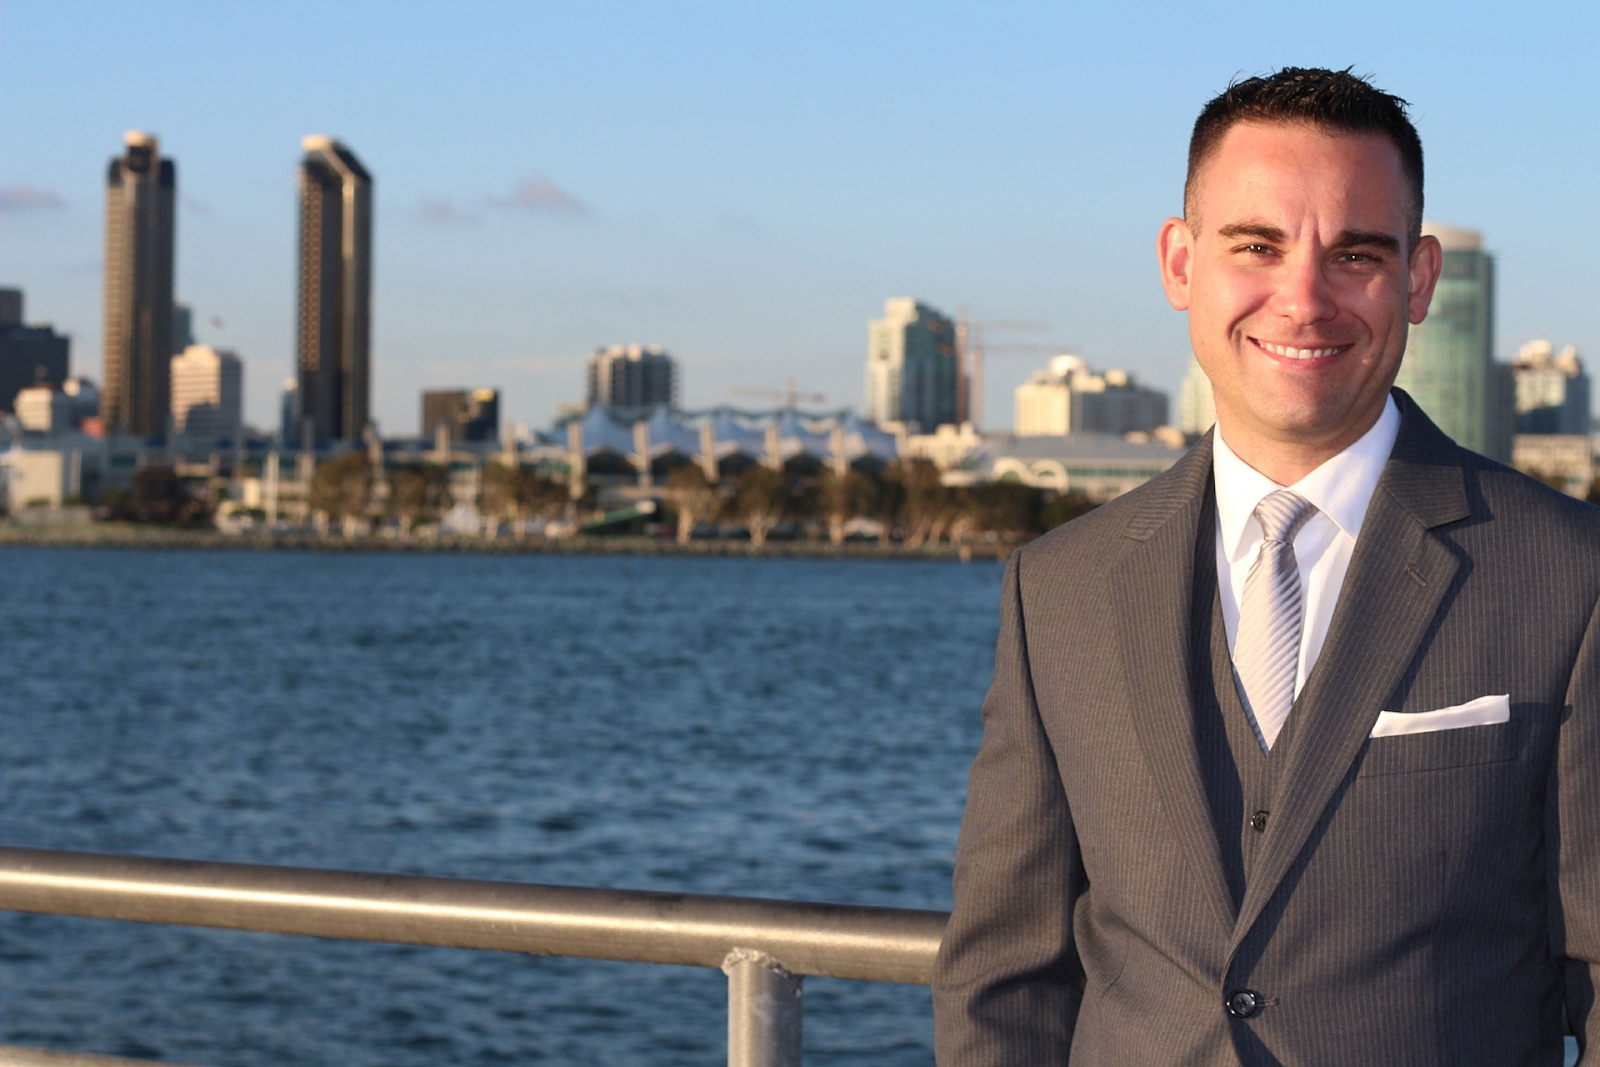 smiling man in suit with river behind him